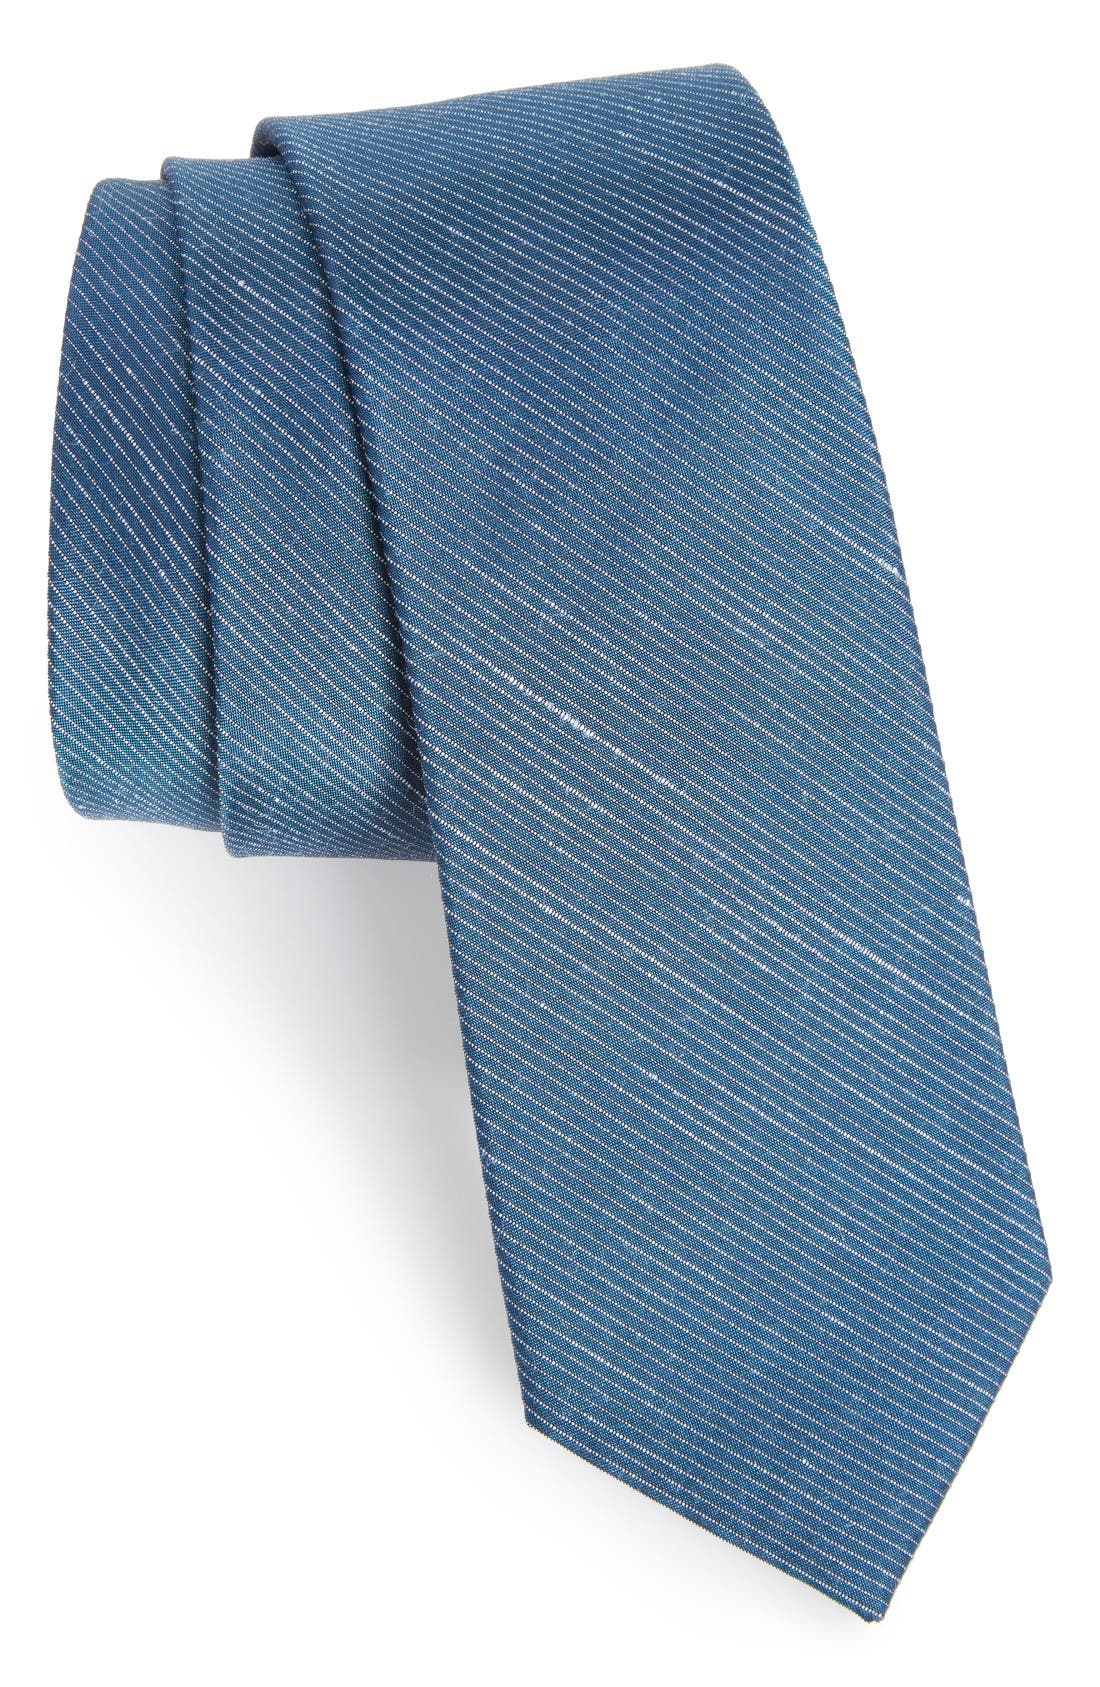 Pinstripe Silk & Linen Tie,                             Main thumbnail 1, color,                             Serene Blue